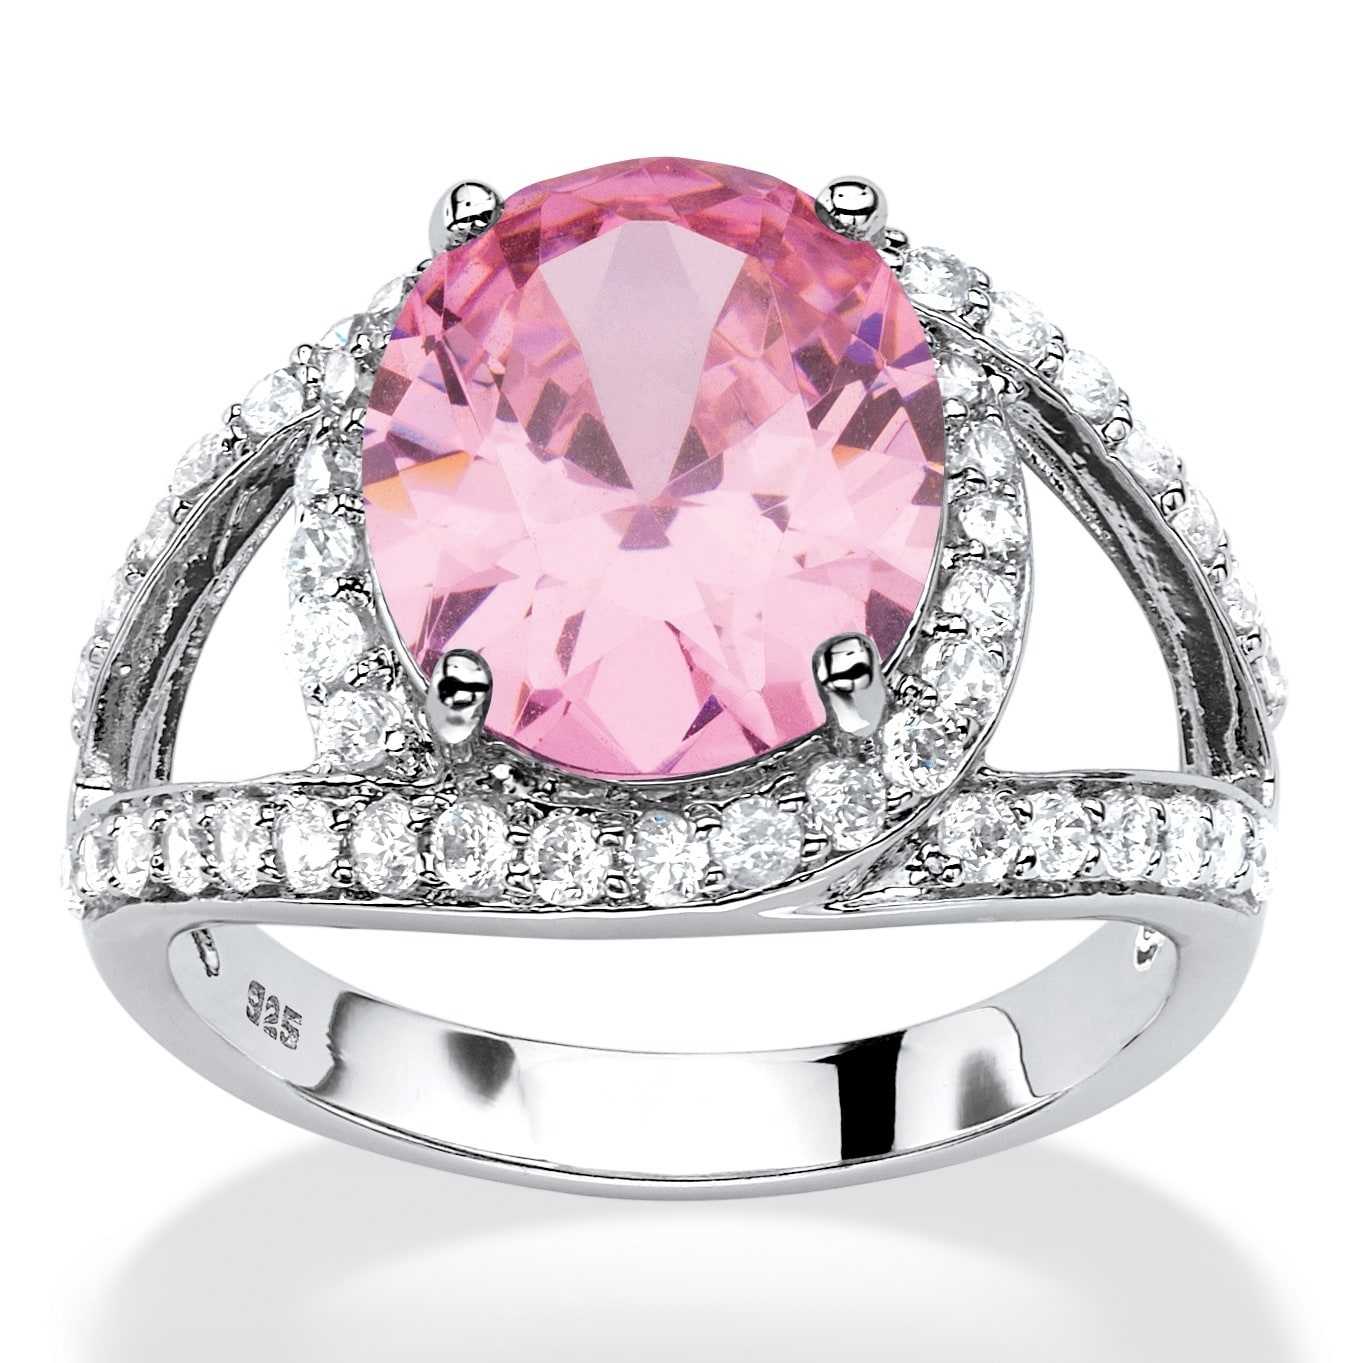 Platinum over Sterling Silver Pink Cubic Zirconia Ring /White - Free ...